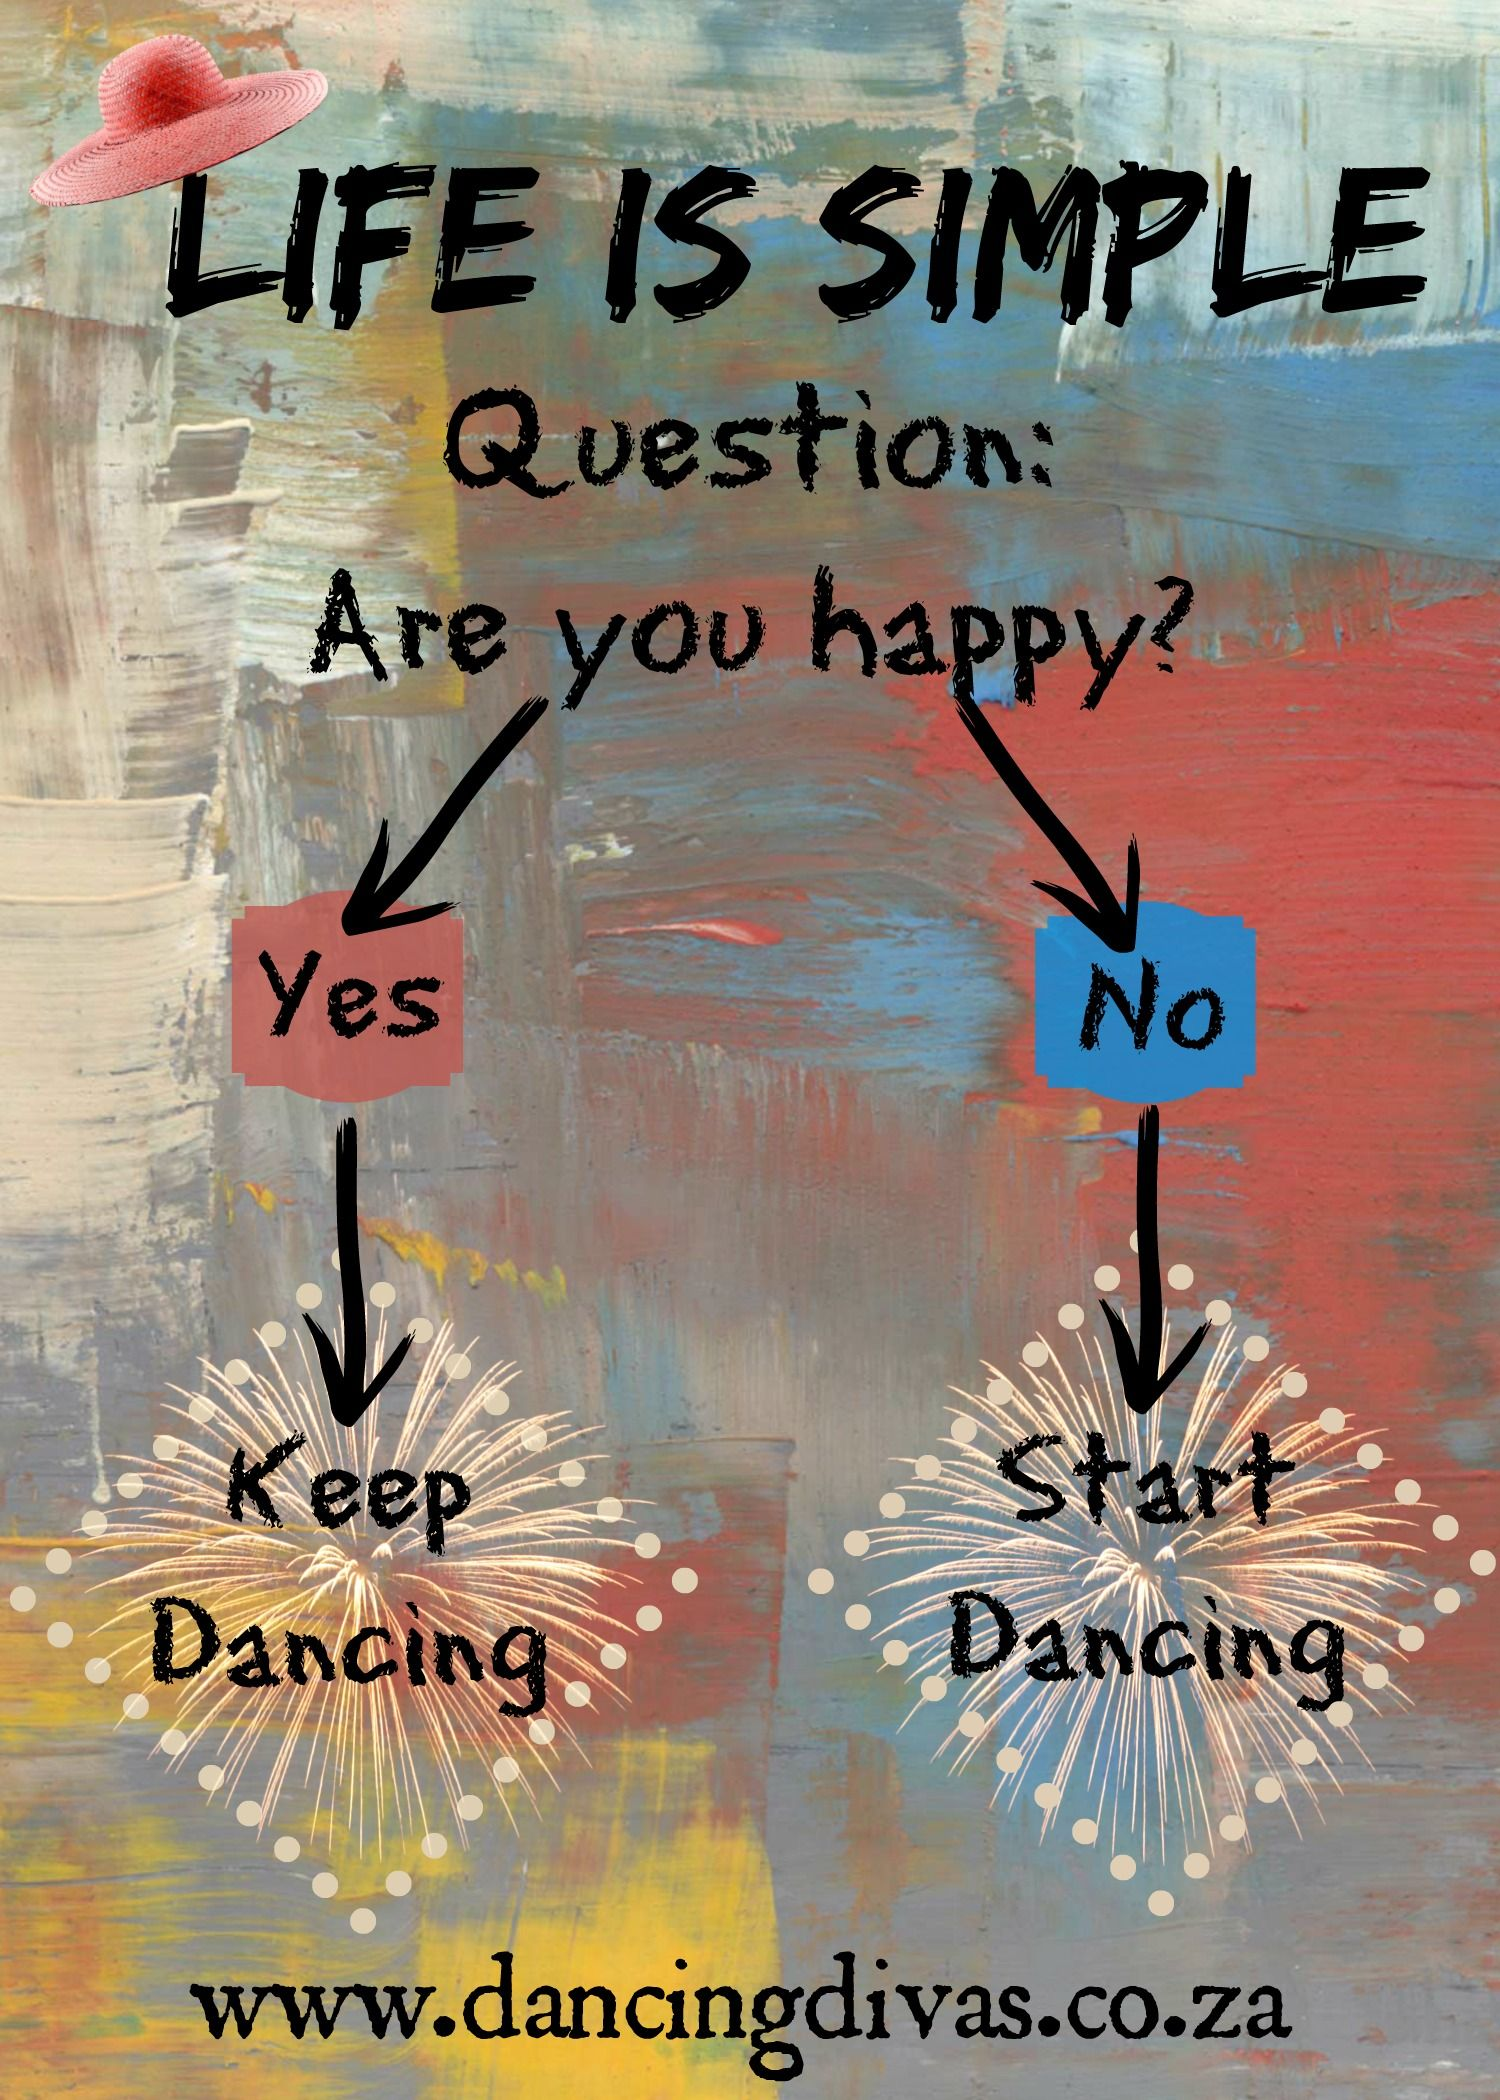 Life is Simple Are you happy? Yes Keep Dancing / No